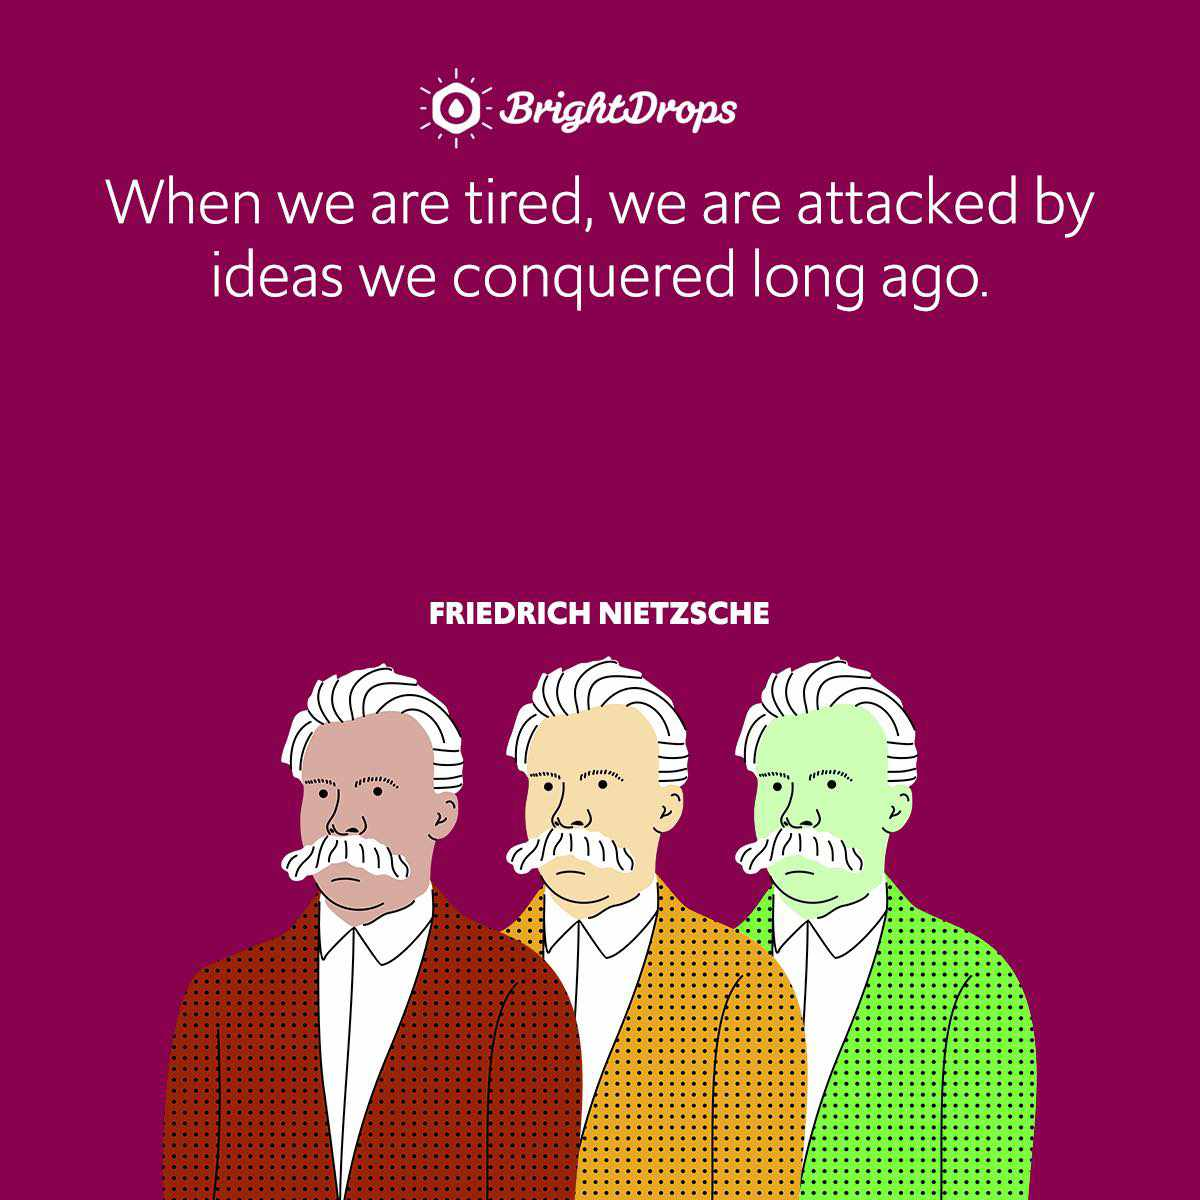 When we are tired, we are attacked by ideas we conquered long ago.